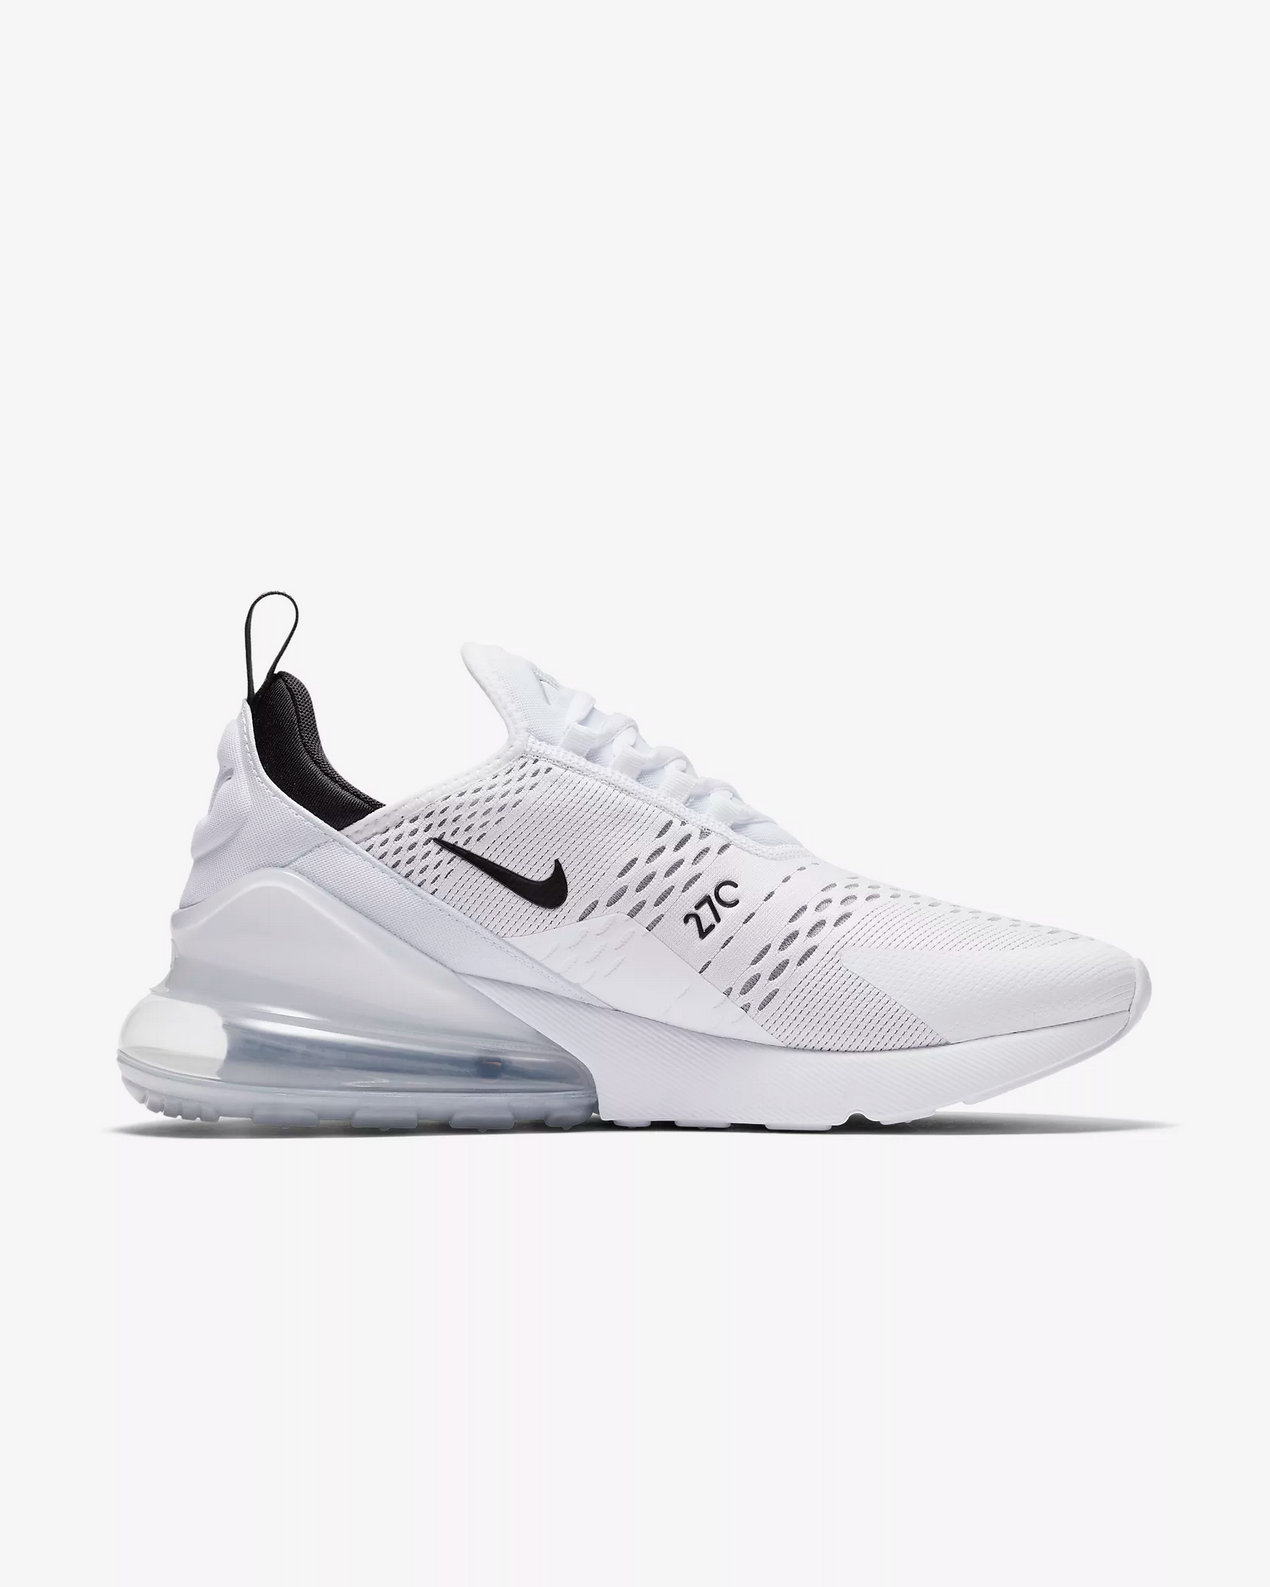 9ae3bbff04be 2018 NikeLab Air Max x Cheap Womens Nike Air Max 270 Clean White-Black-